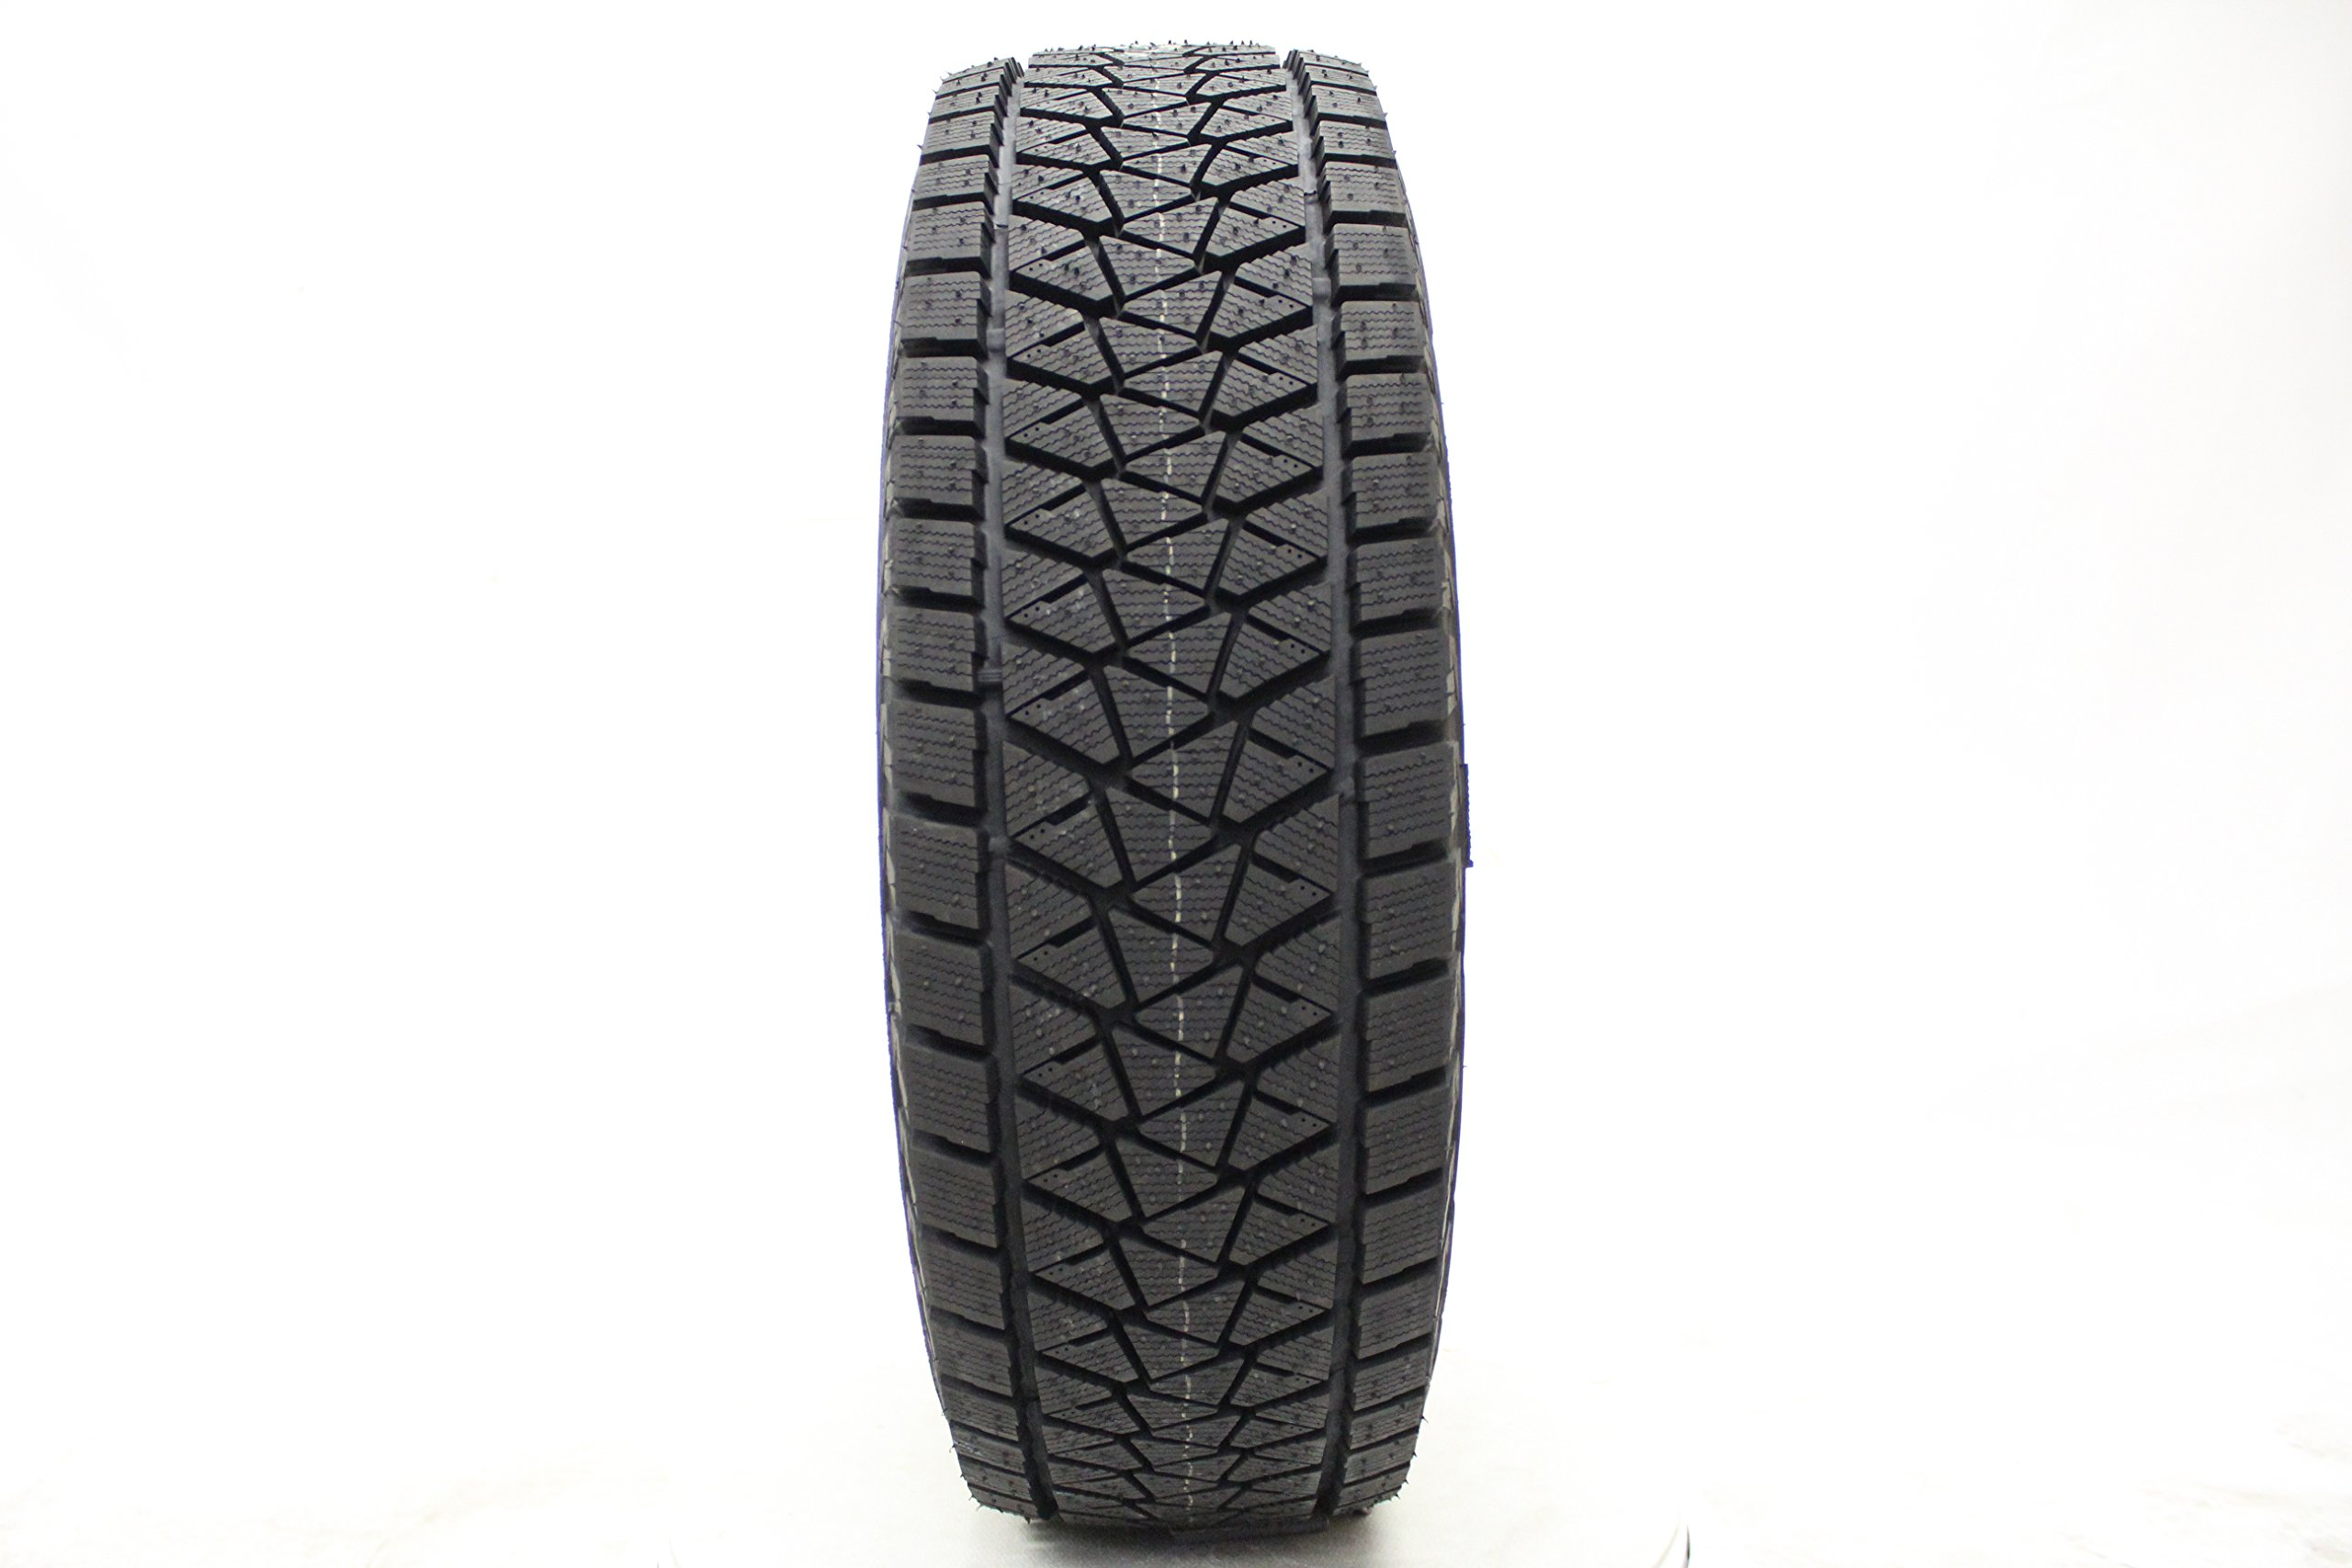 Bridgestone BLIZZAK DM-V2 Winter Radial Tire - 255/50R20 109T by Bridgestone